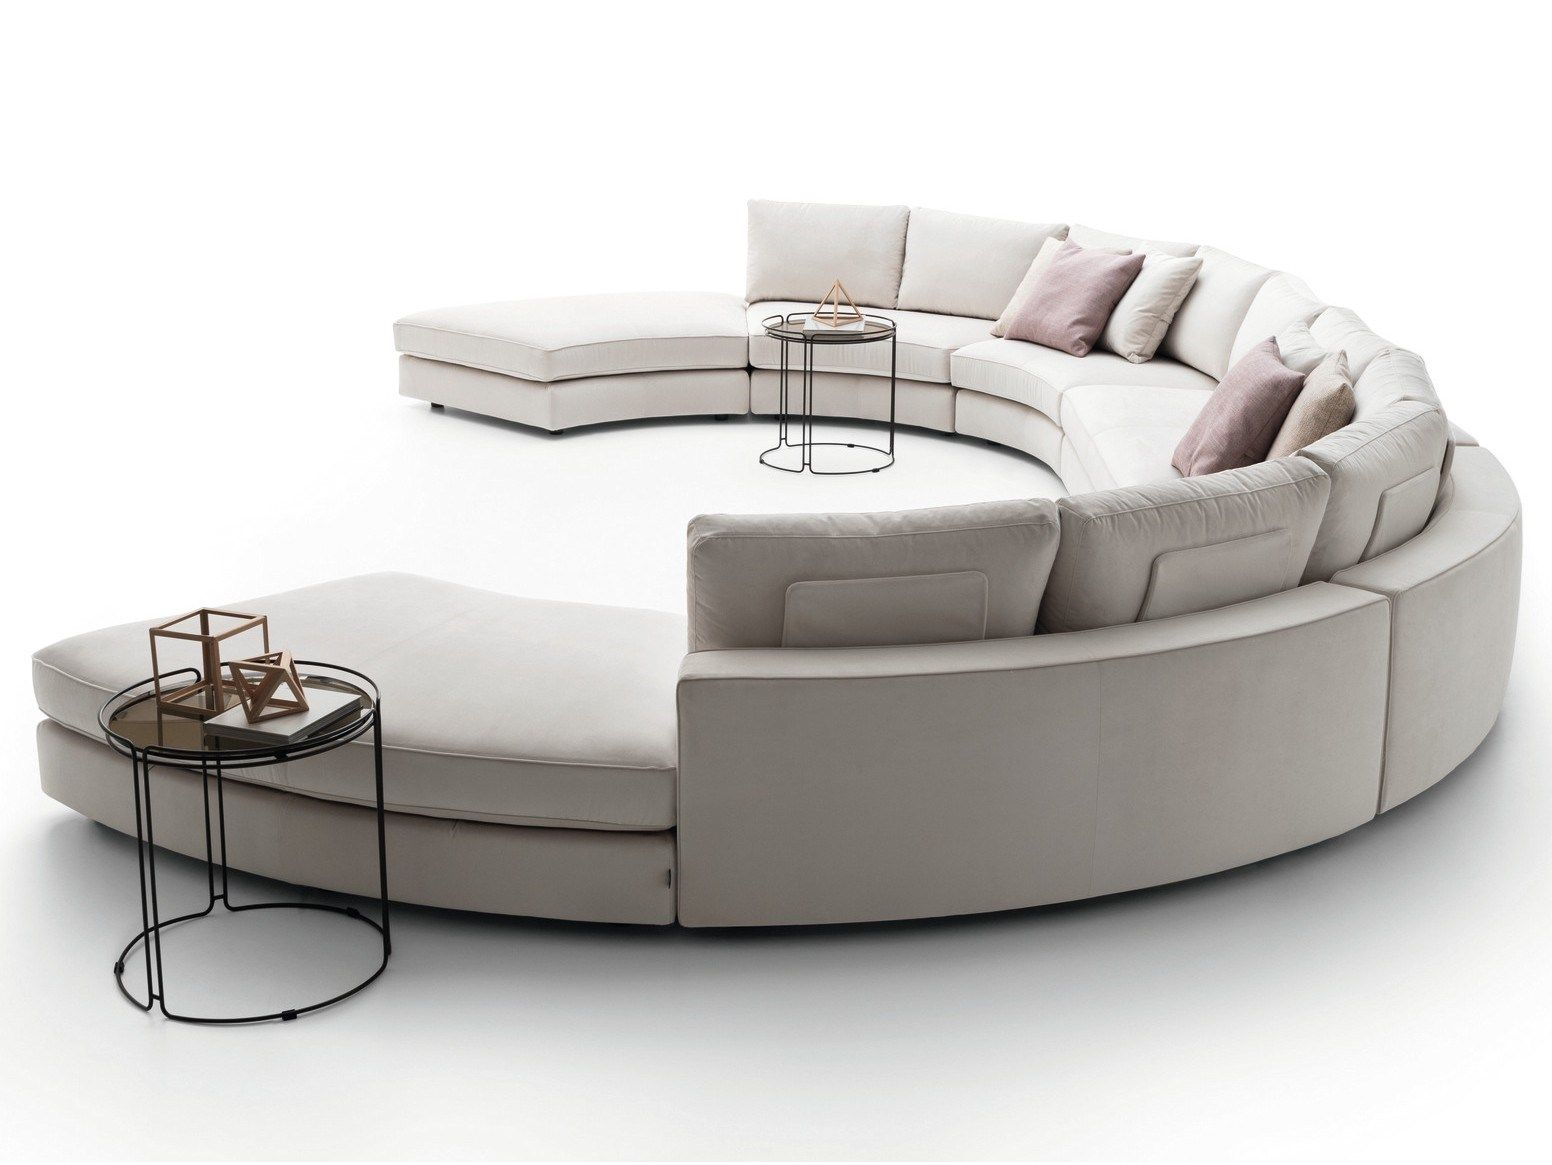 Loman Curved Sofa By Ditre Italia Design Stefano Spessotto